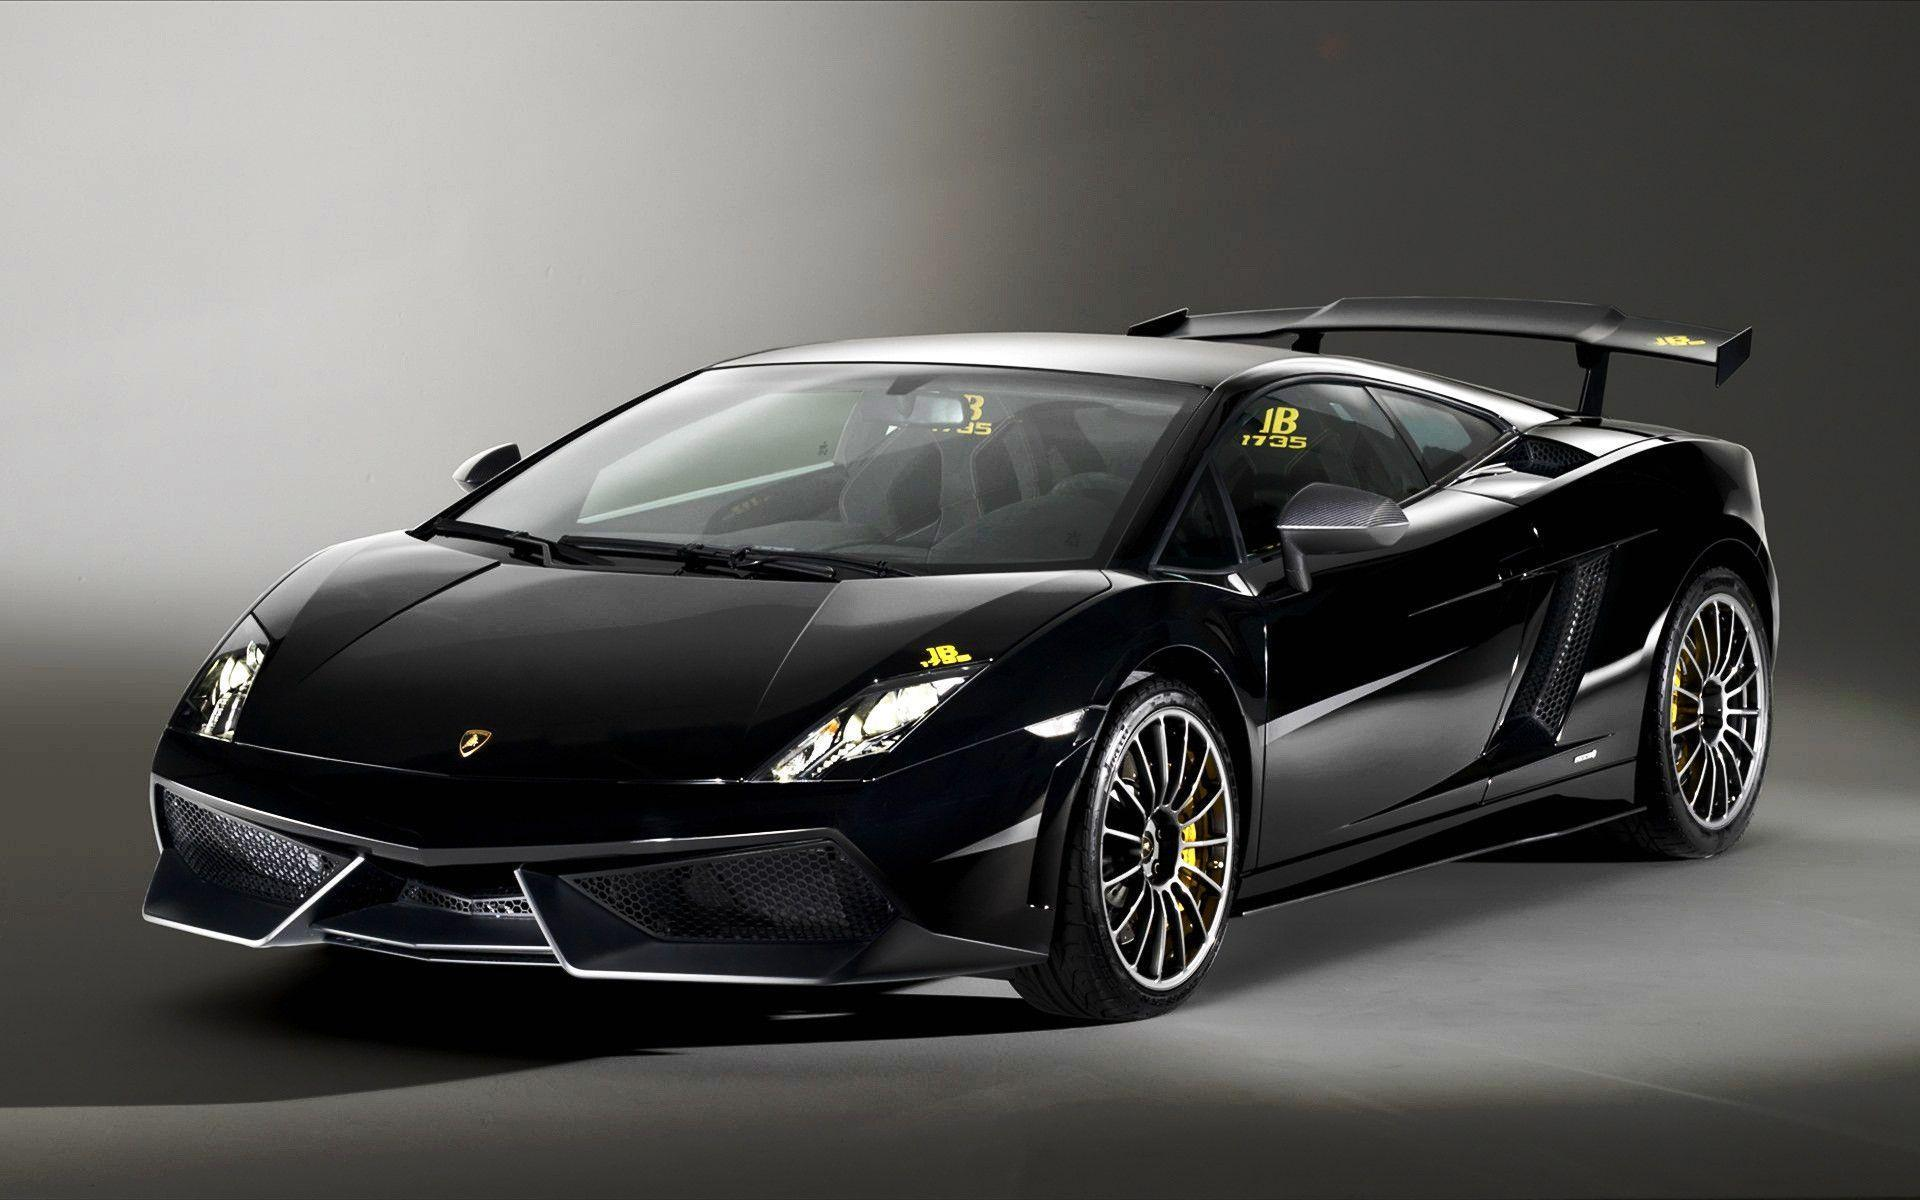 2011 Lamborghini Gallardo Wallpapers | HD Wallpapers